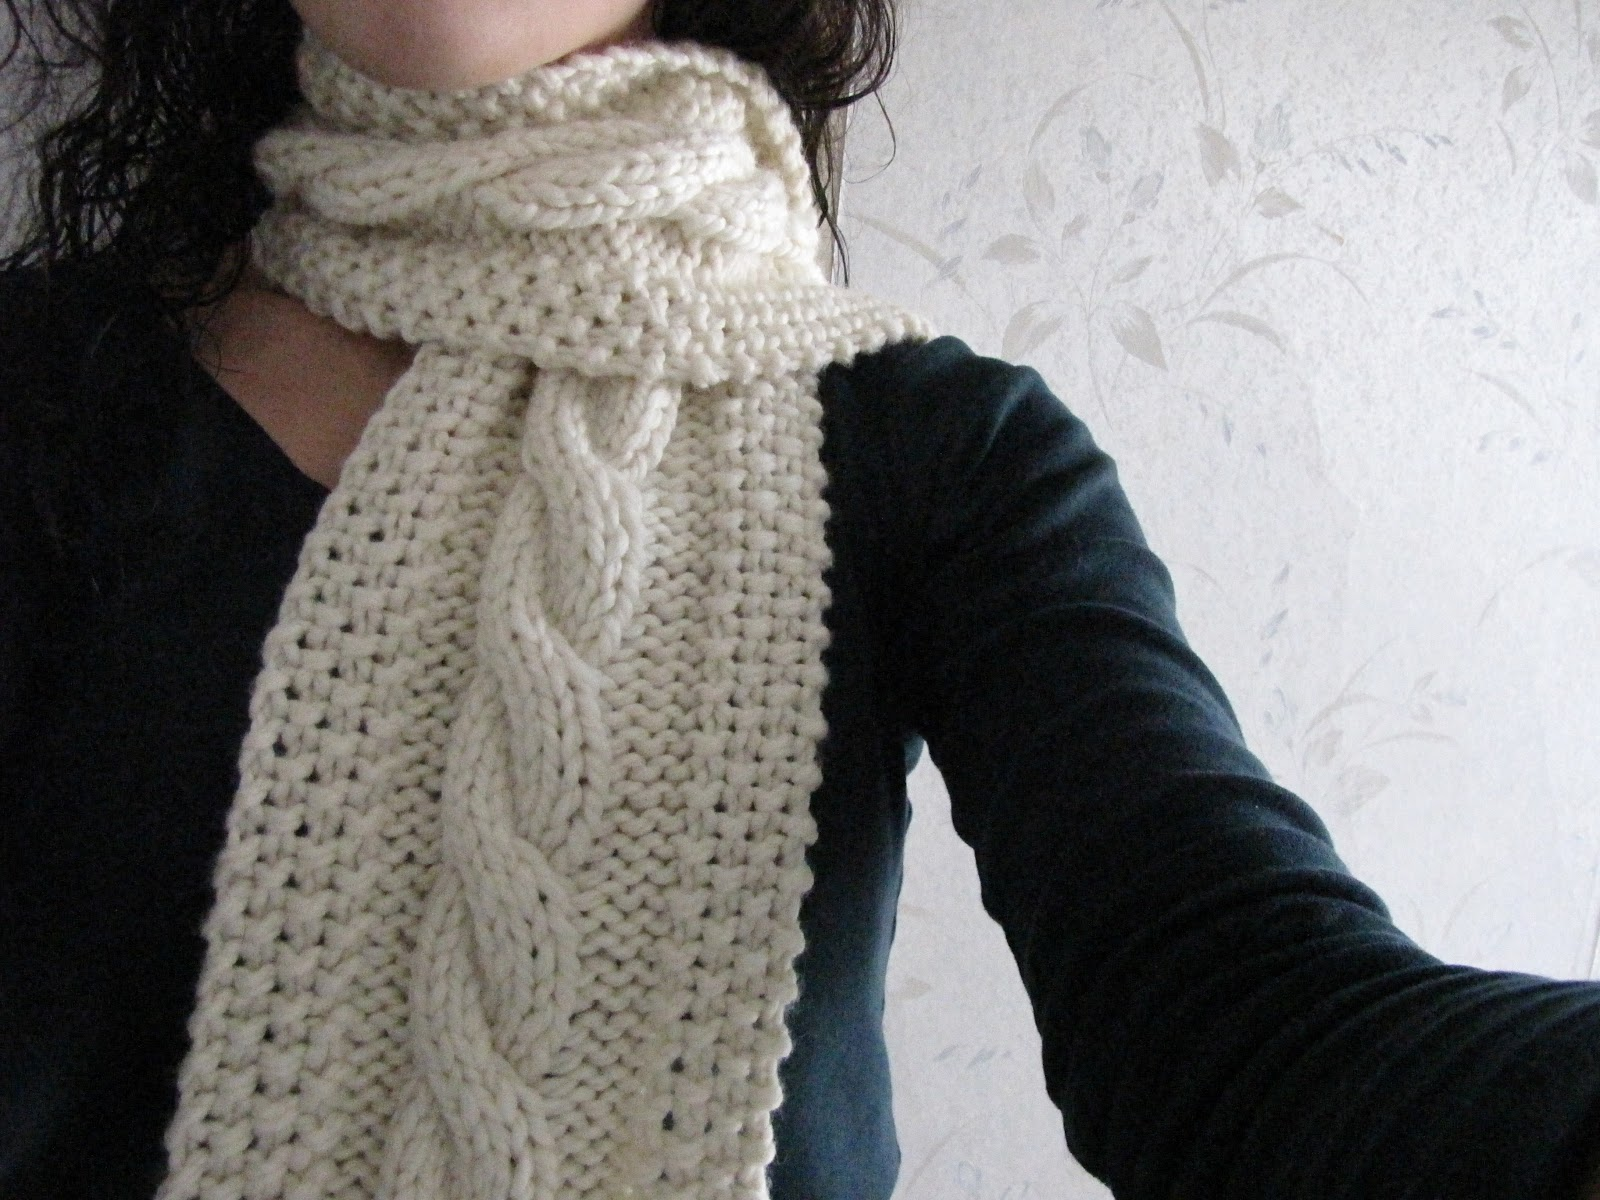 Easy Knitting Stitches For A Scarf : Cozy Wooly Cabled Scarf